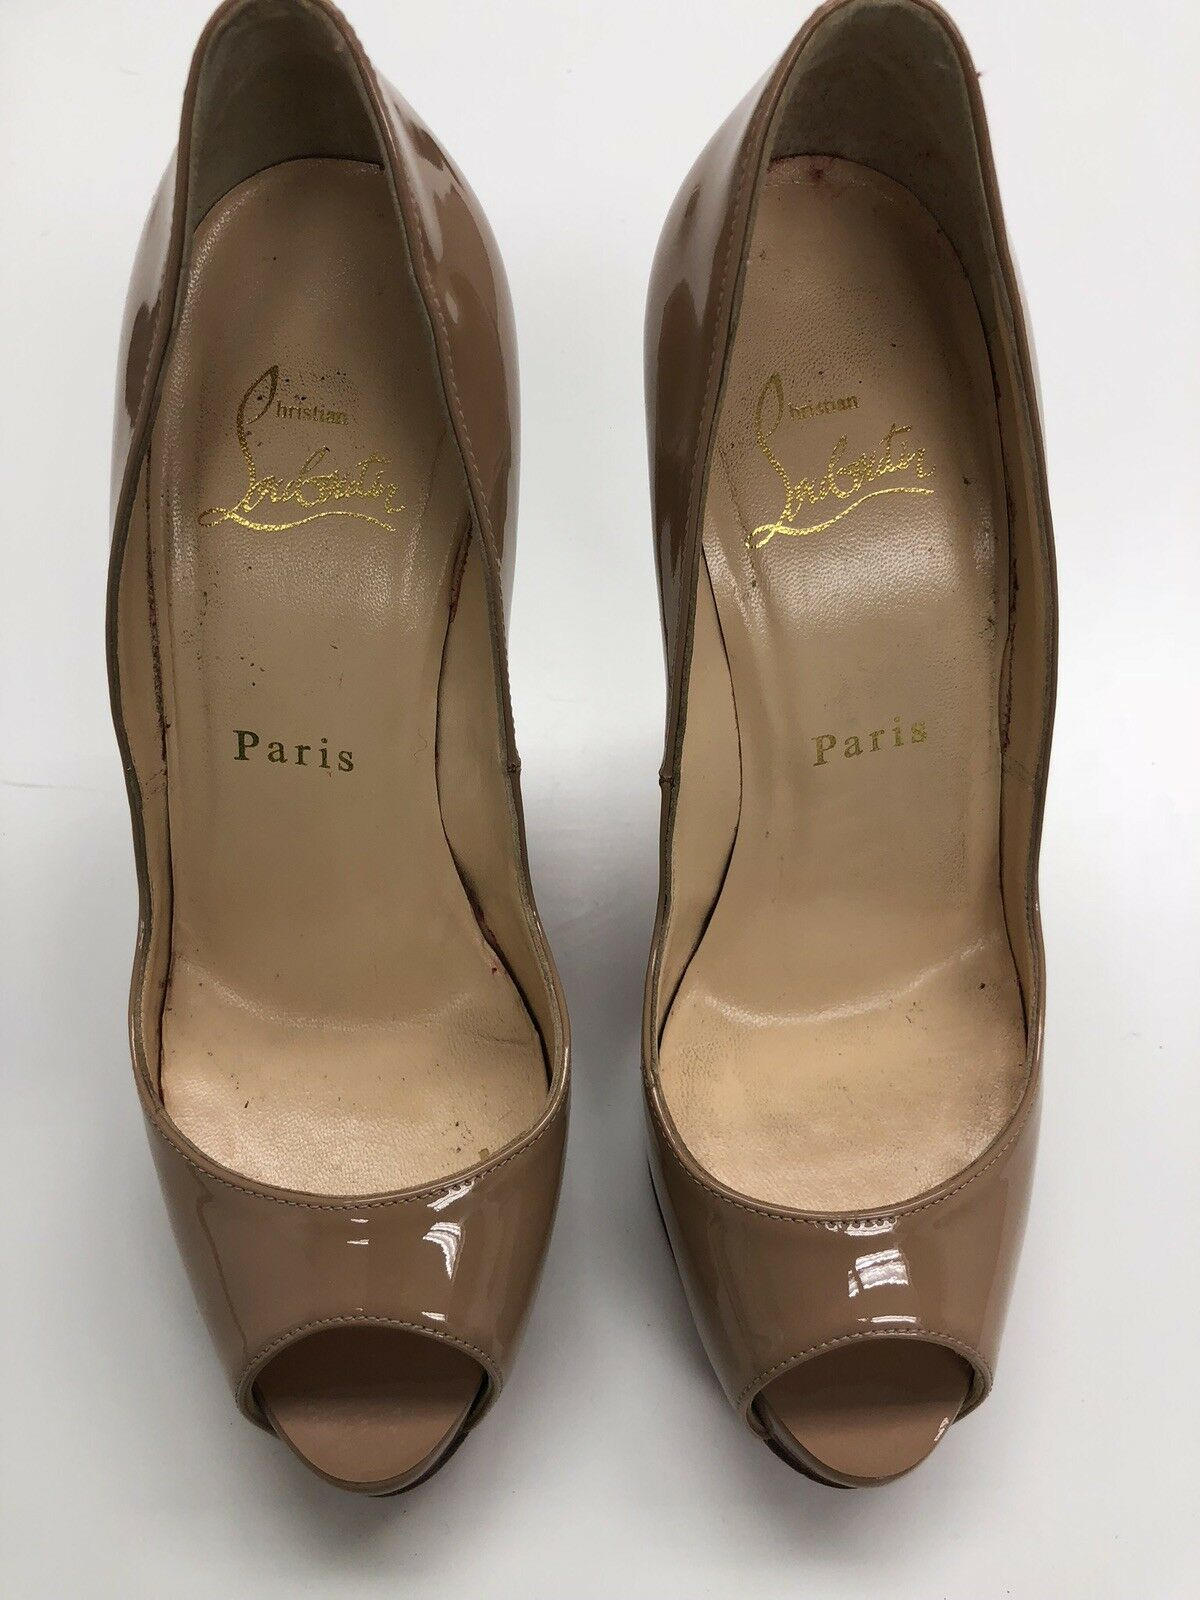 100% AUTH Christian Louboutin Prive Patent Leather Open Toe Pump Size 35.5  945